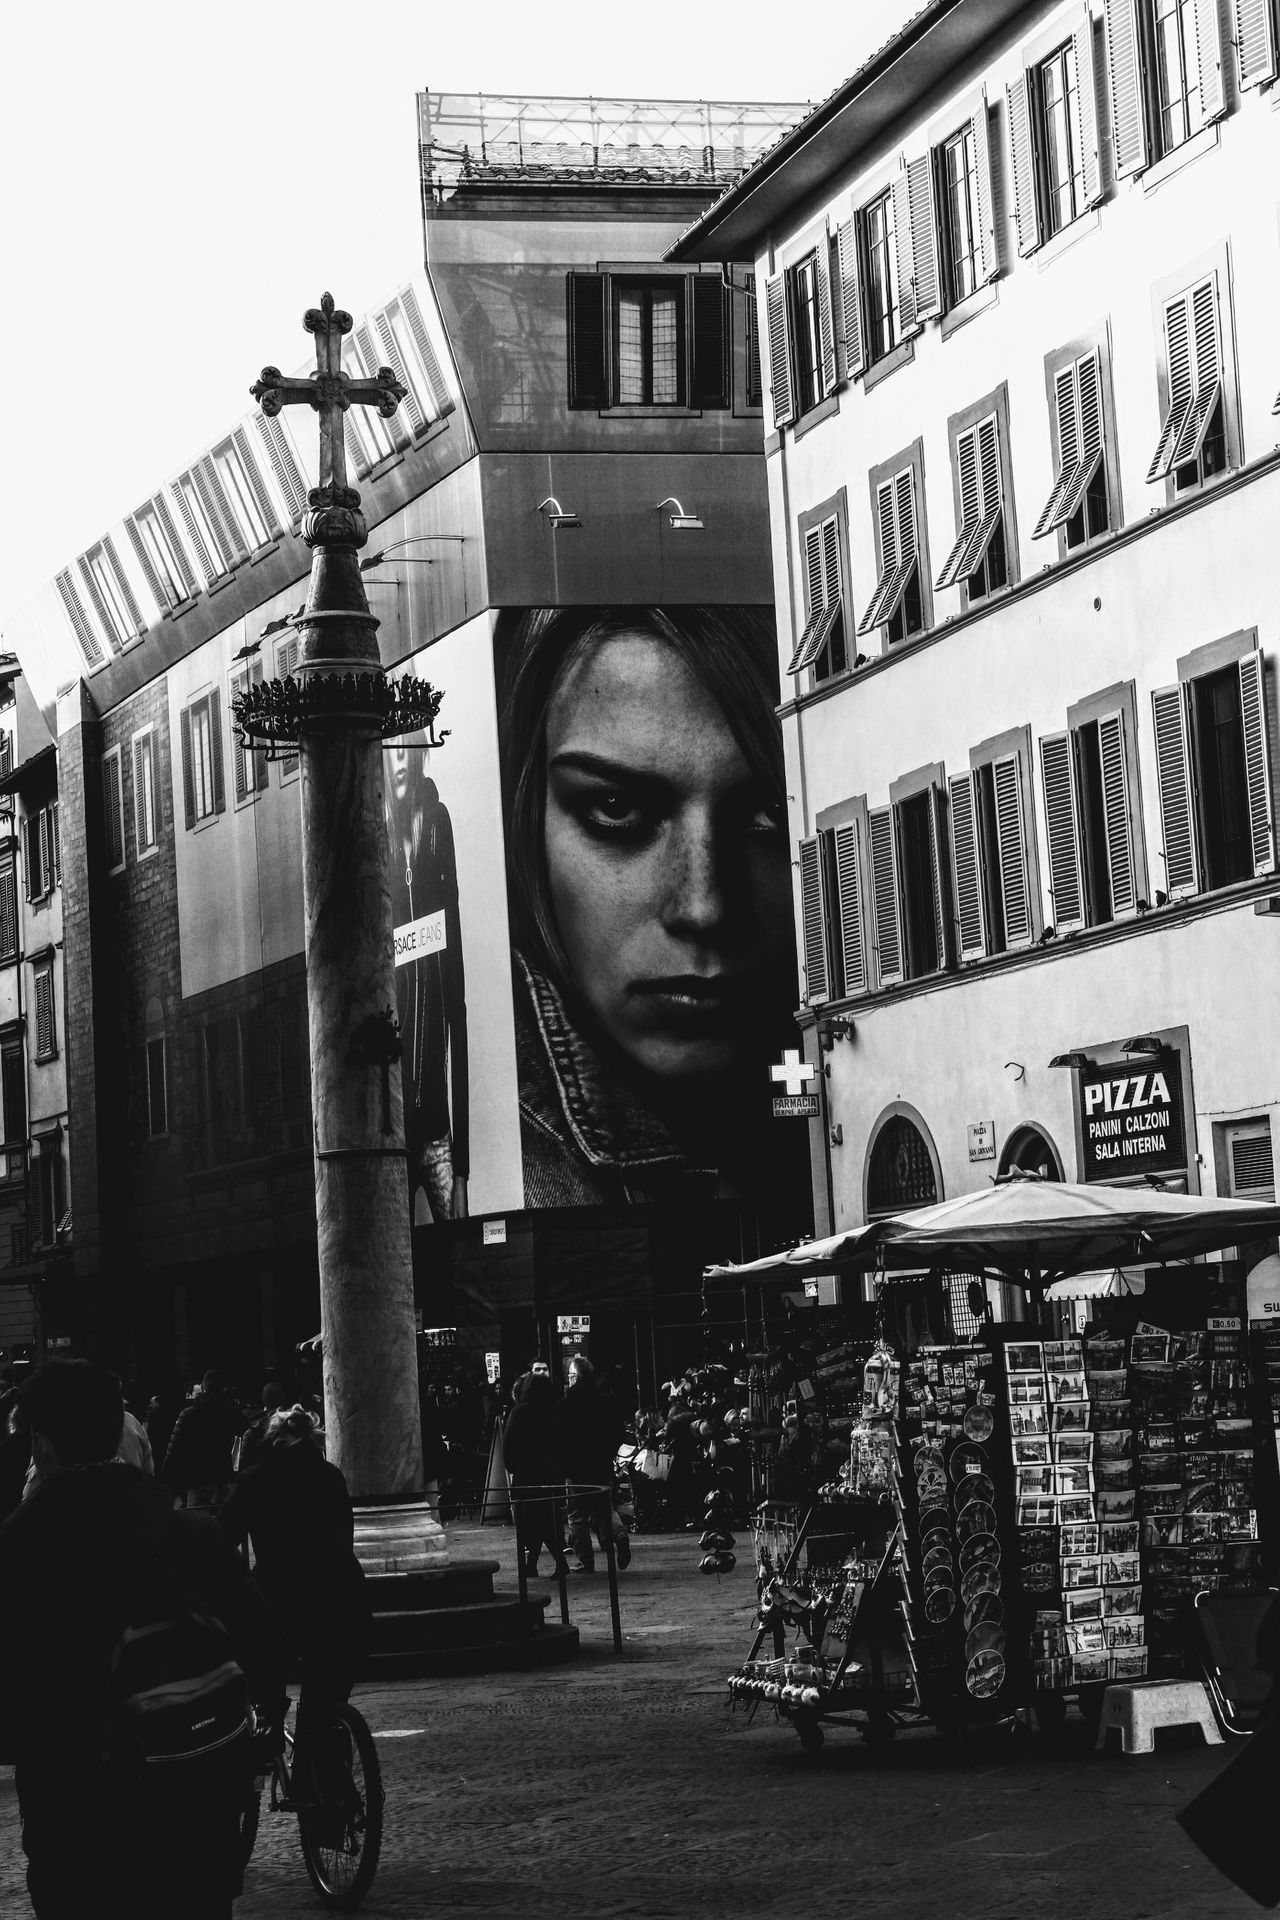 Adapted To The City Young Adult Outdoors People Human Body Part Color Of Life Disegnare Con La Luce Blackandwhite Black And White Blackandwhite Photography Feel The Journey, Black & White Citta City Life City Street City Firenze EyeEmNewHere City